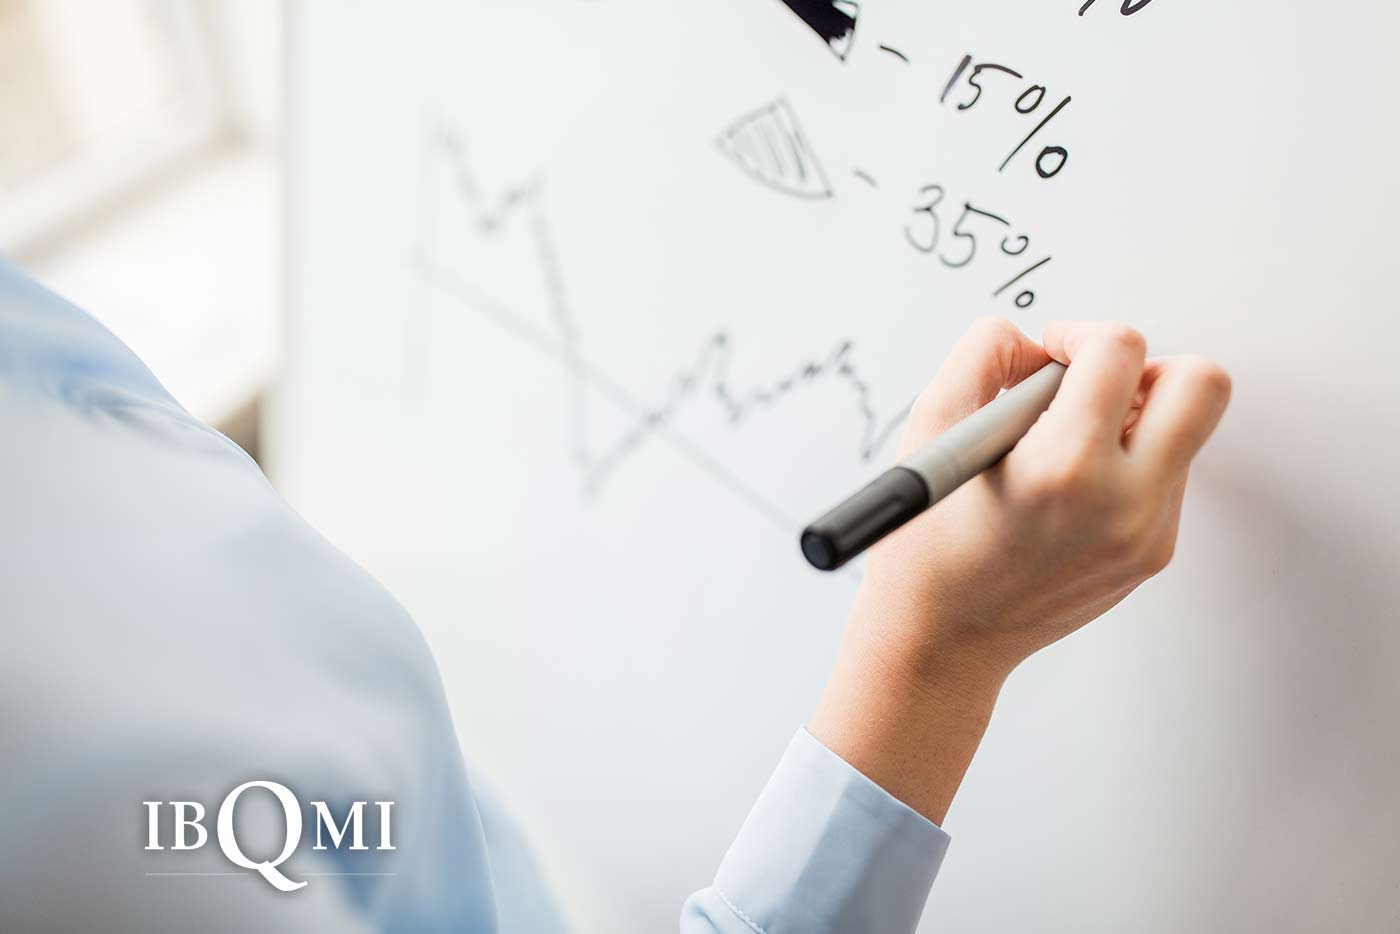 Essential elements of tqm approach in human resource